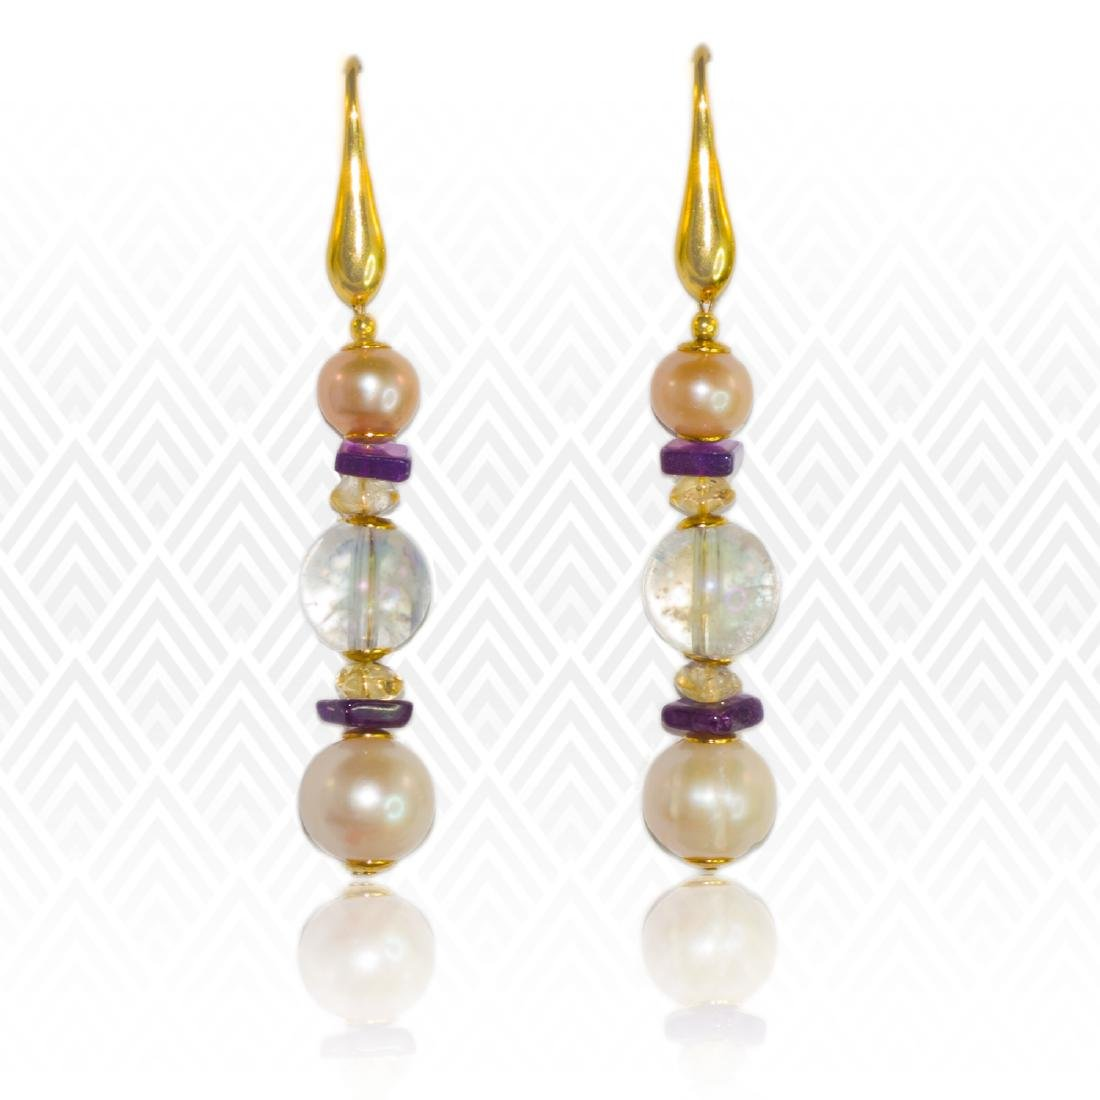 Sea Treasure' Pearl and Mystic topaz Earrings